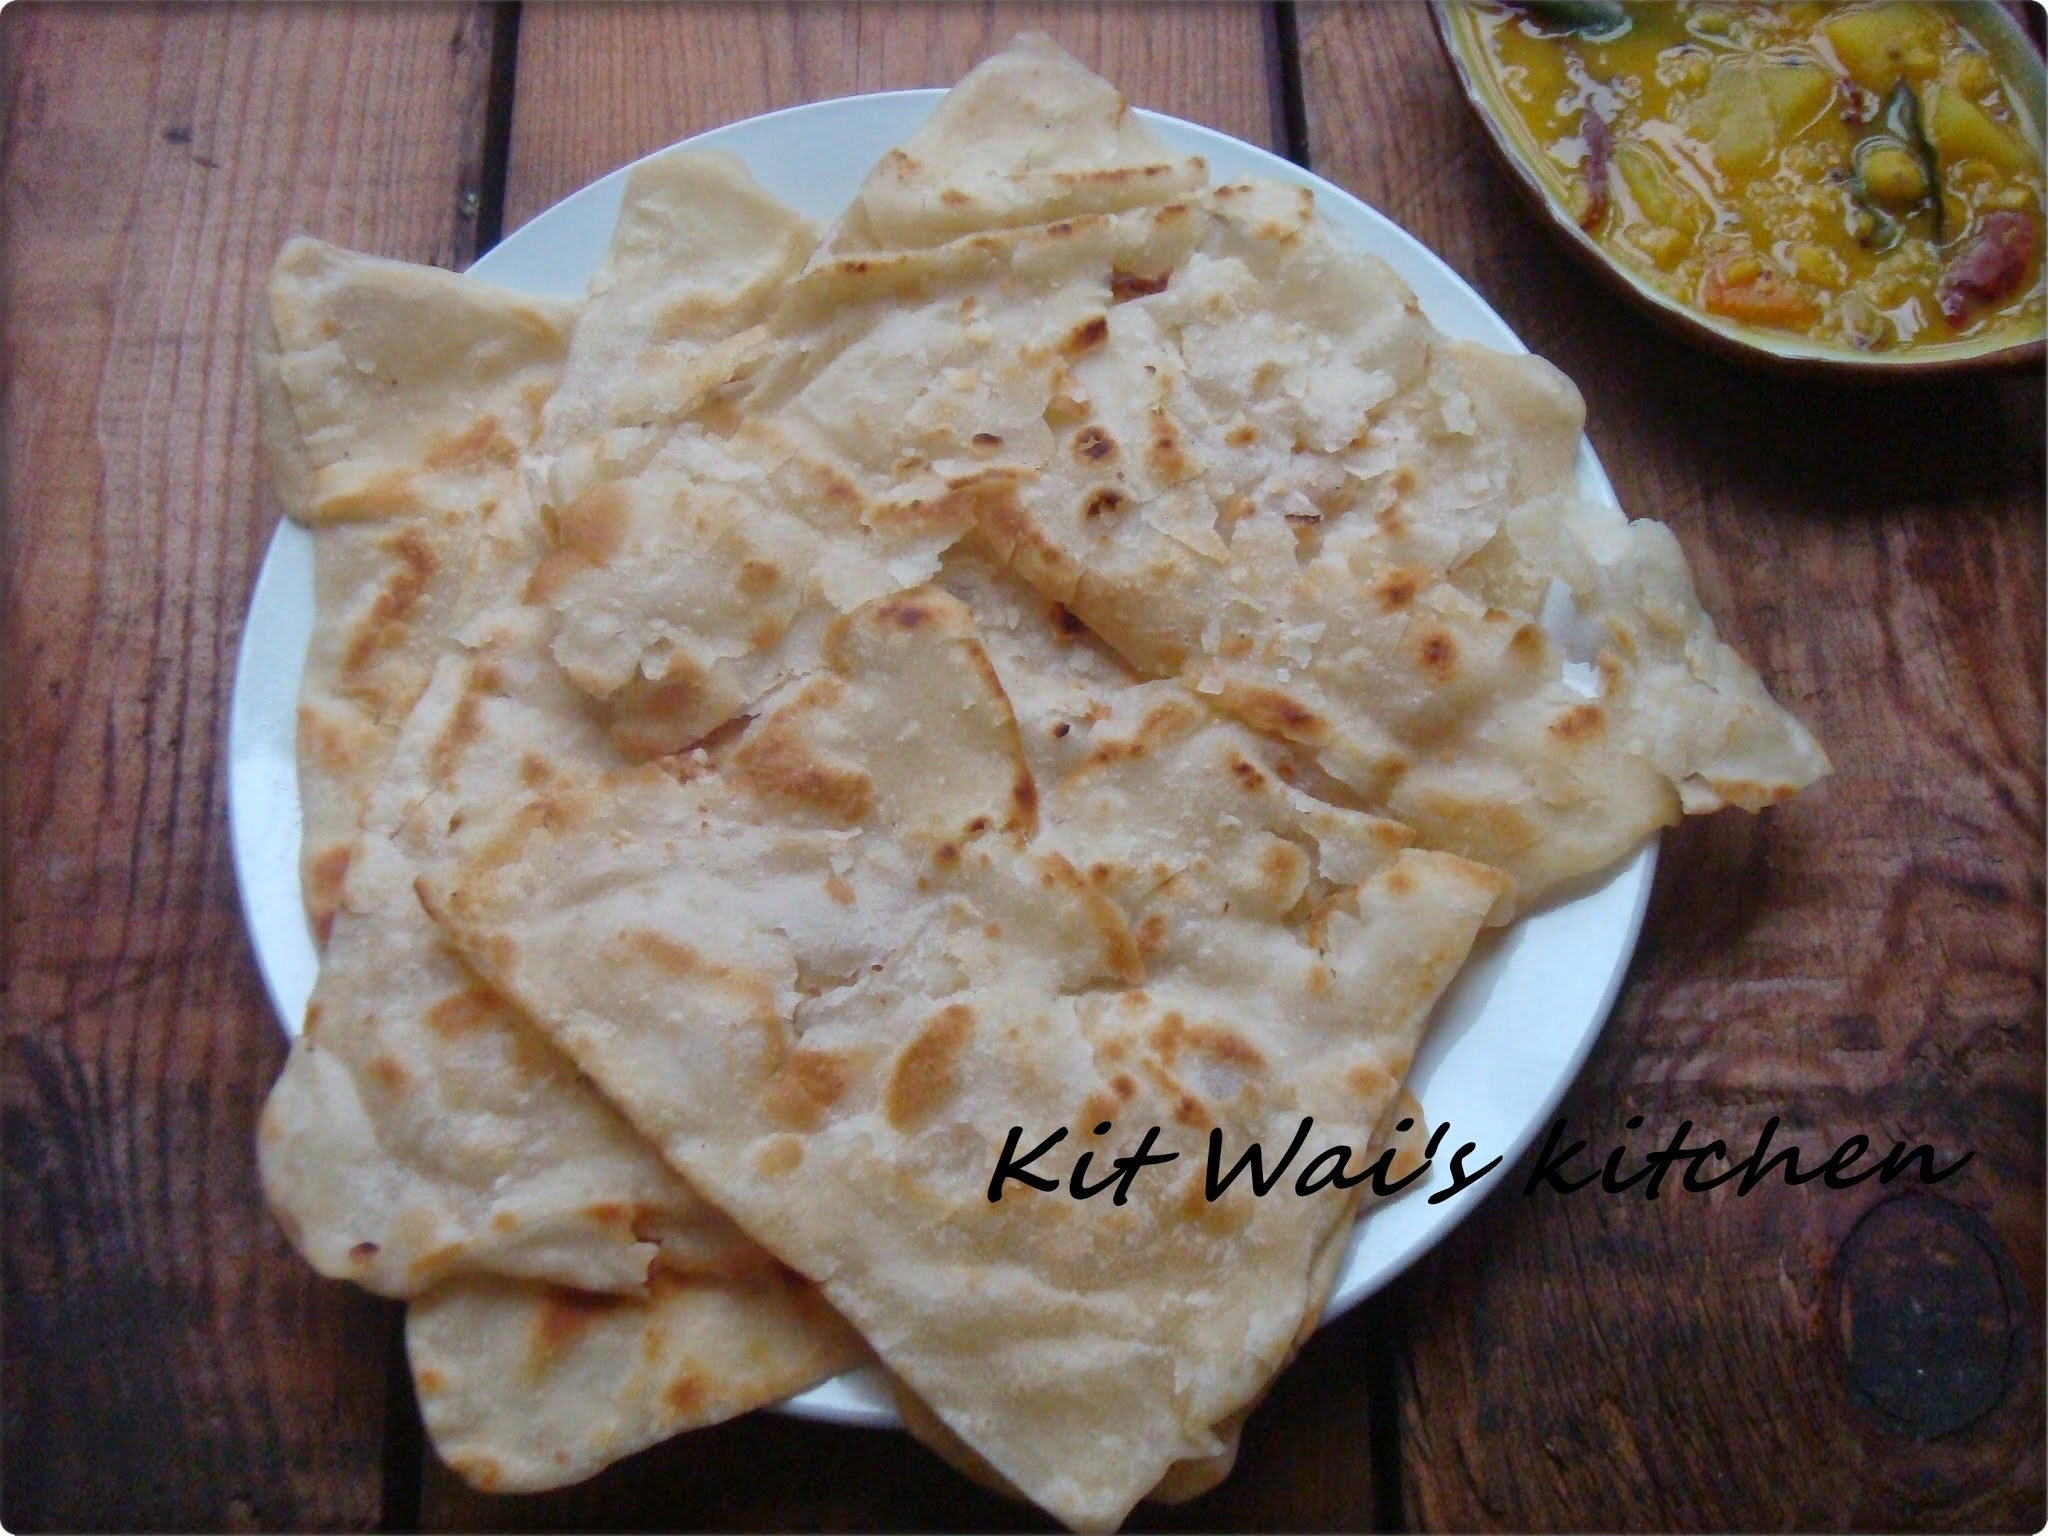 印度煎饼 & Dhal curry ~ Indian Flatbread ( Roti Canai ) & Dhal Curry